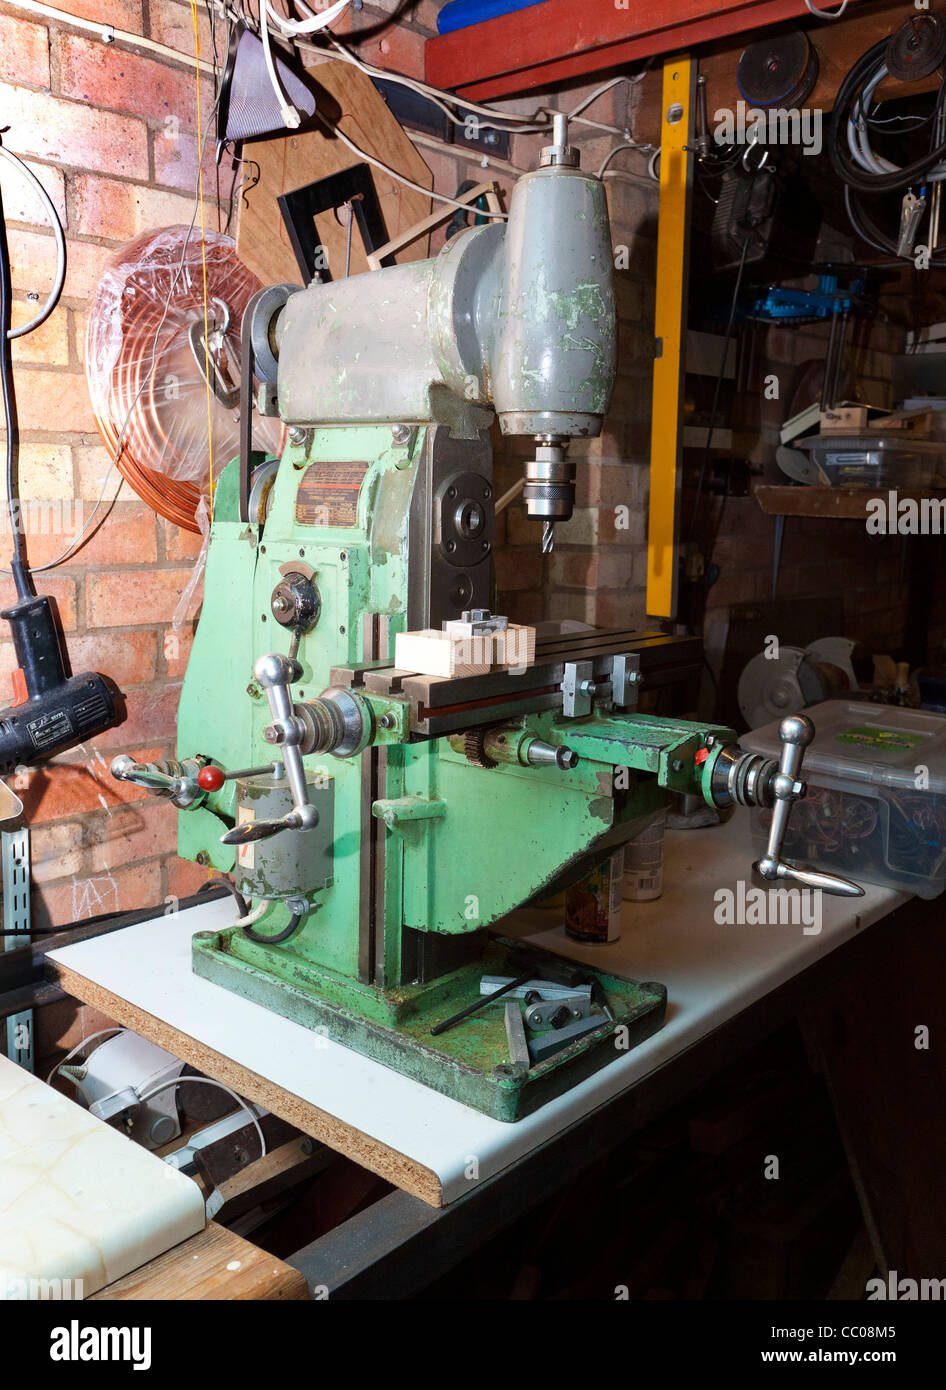 compact vertical milling machine in workshop - Stock Image